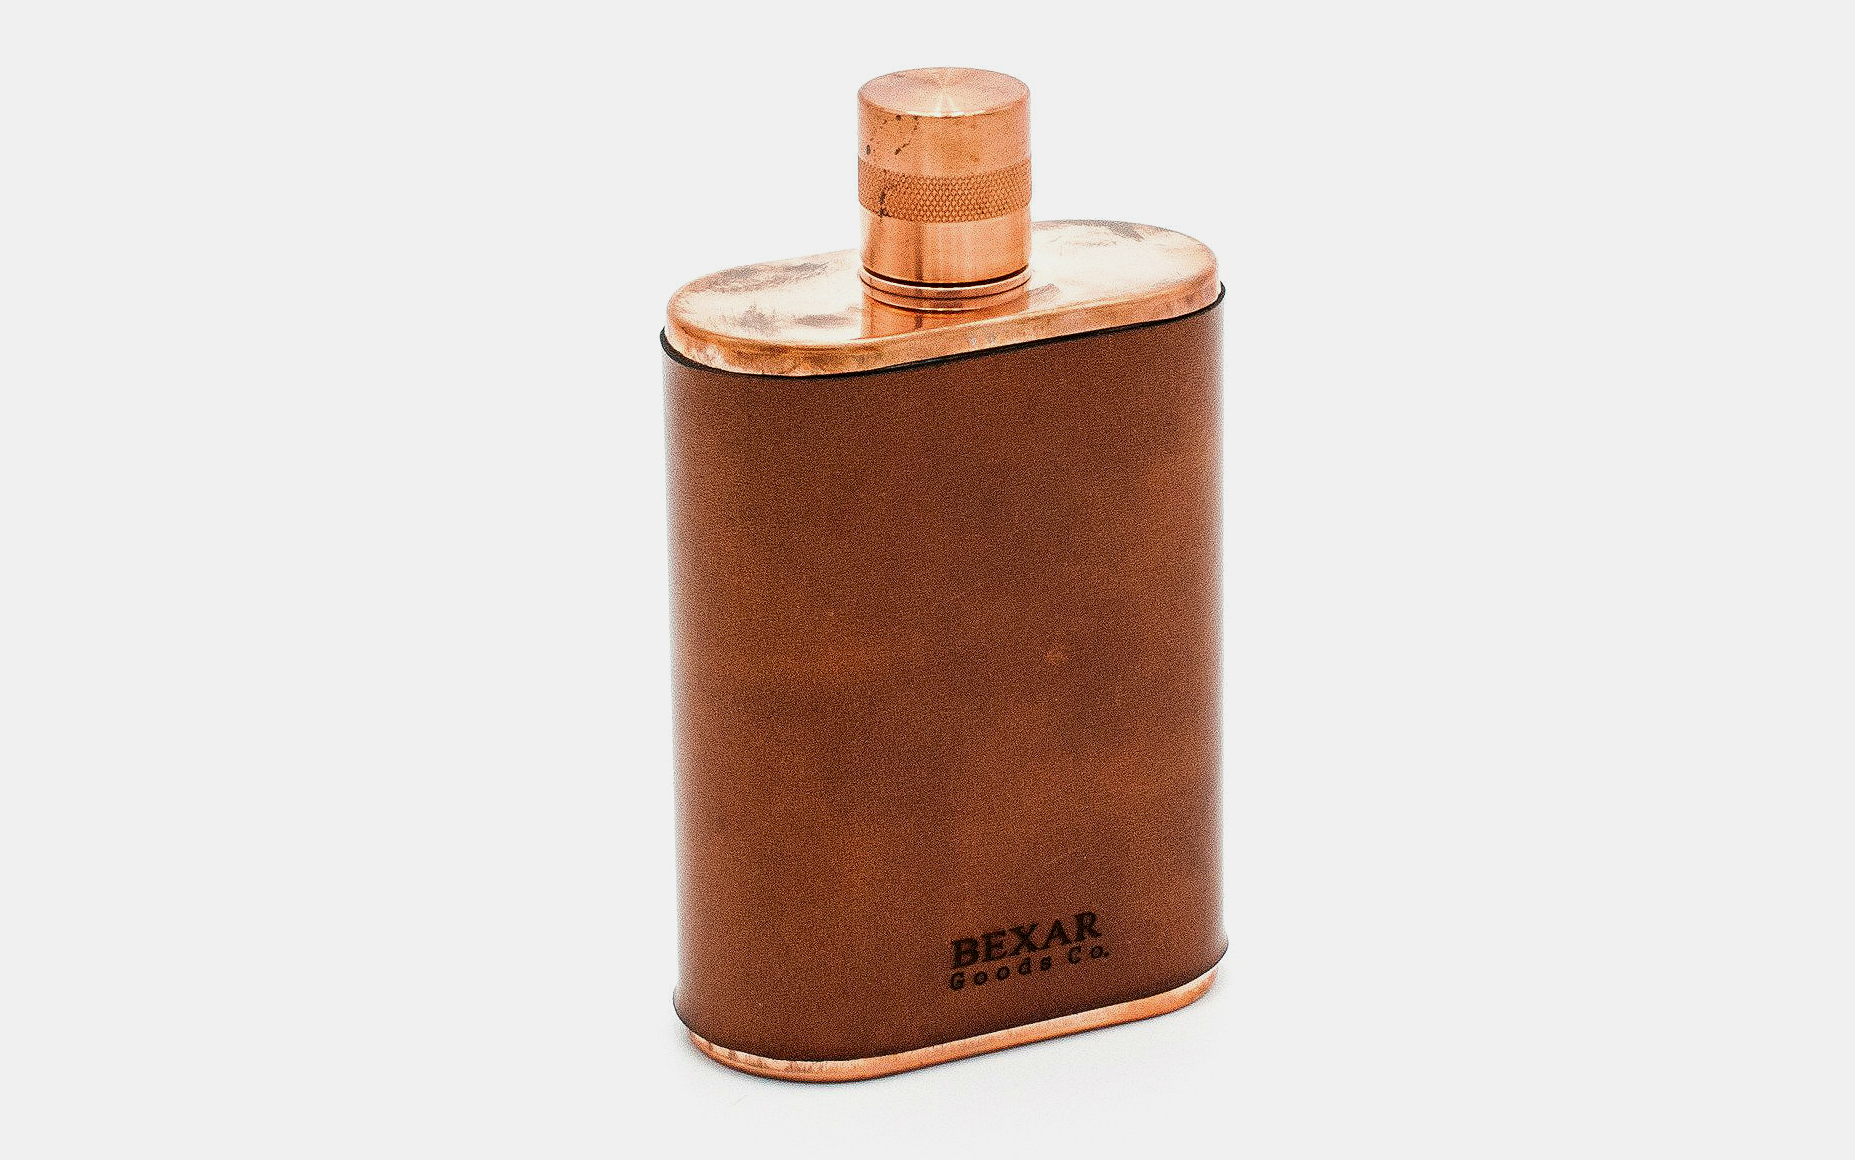 Bexar Goods x Jacob Bromwell Vermonter Flask